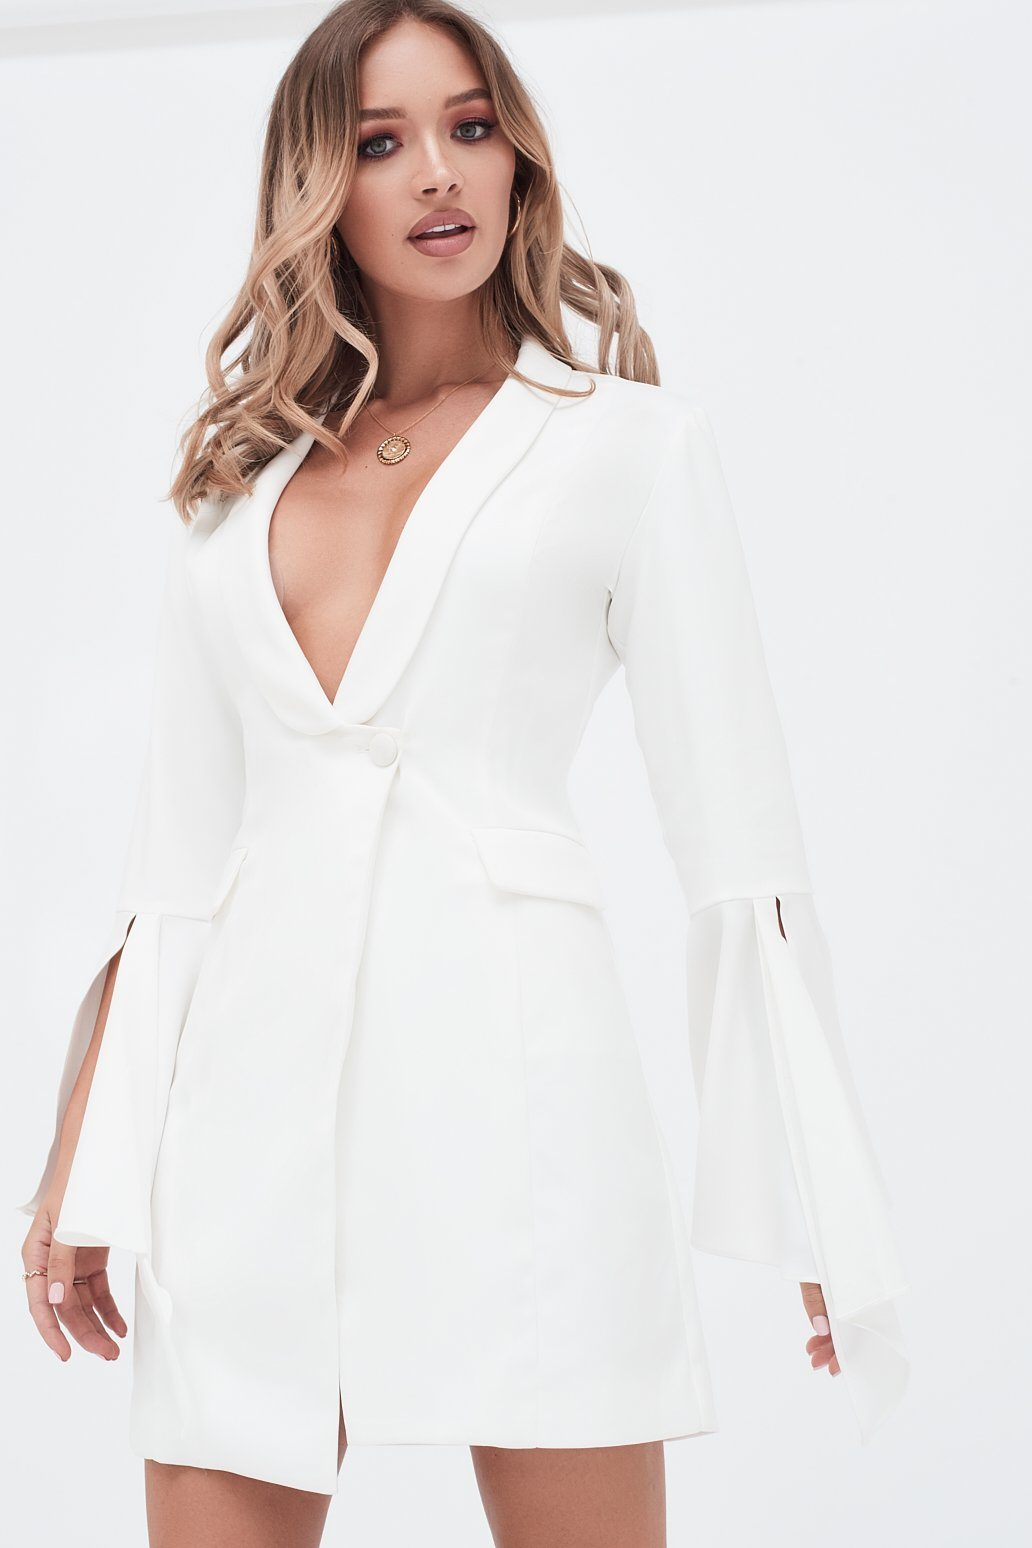 Lavish Alice Dropped Frill Bell Sleeve Blazer Dress in White